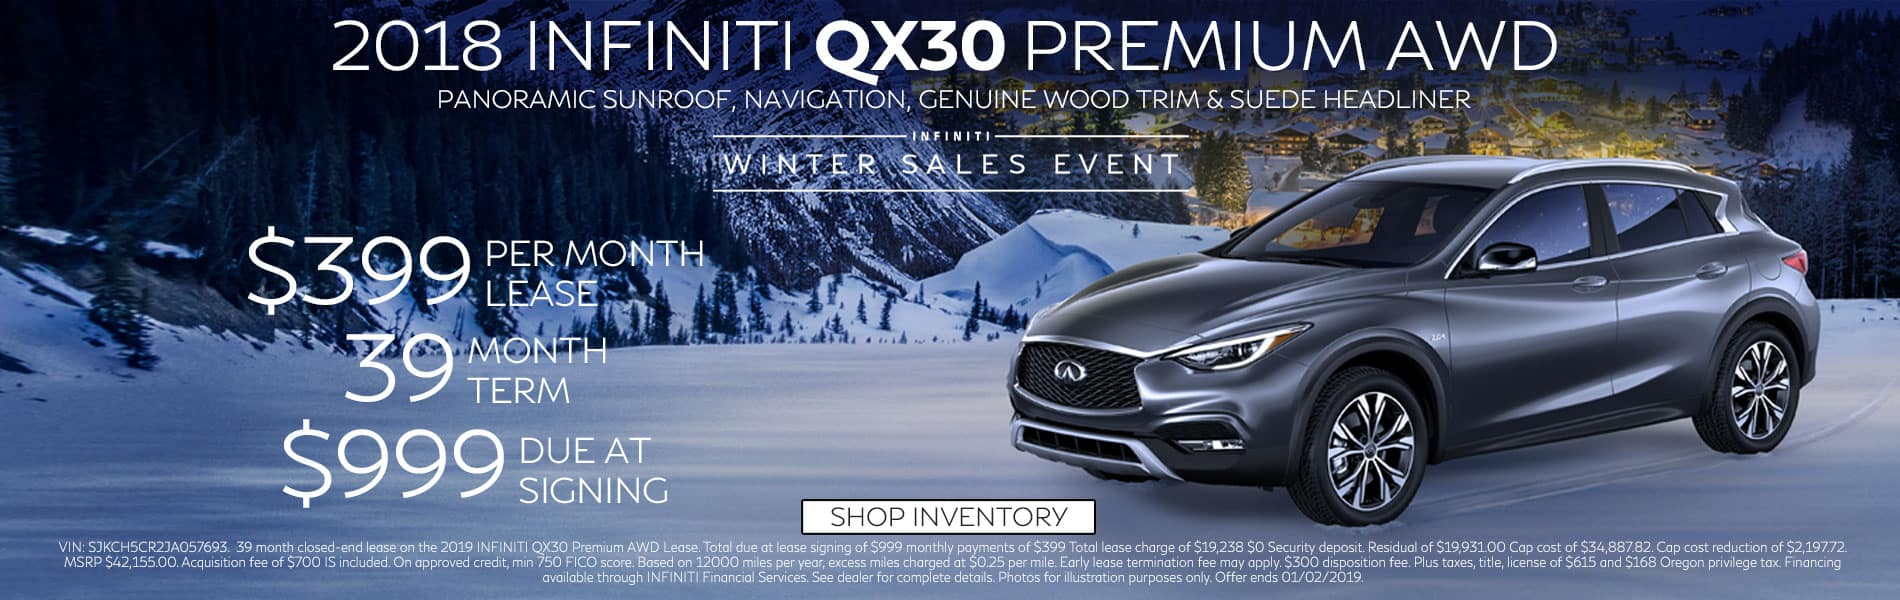 Lease a 2018 QX30 PREMIUM AWD for $399 per month with $999 due at signing